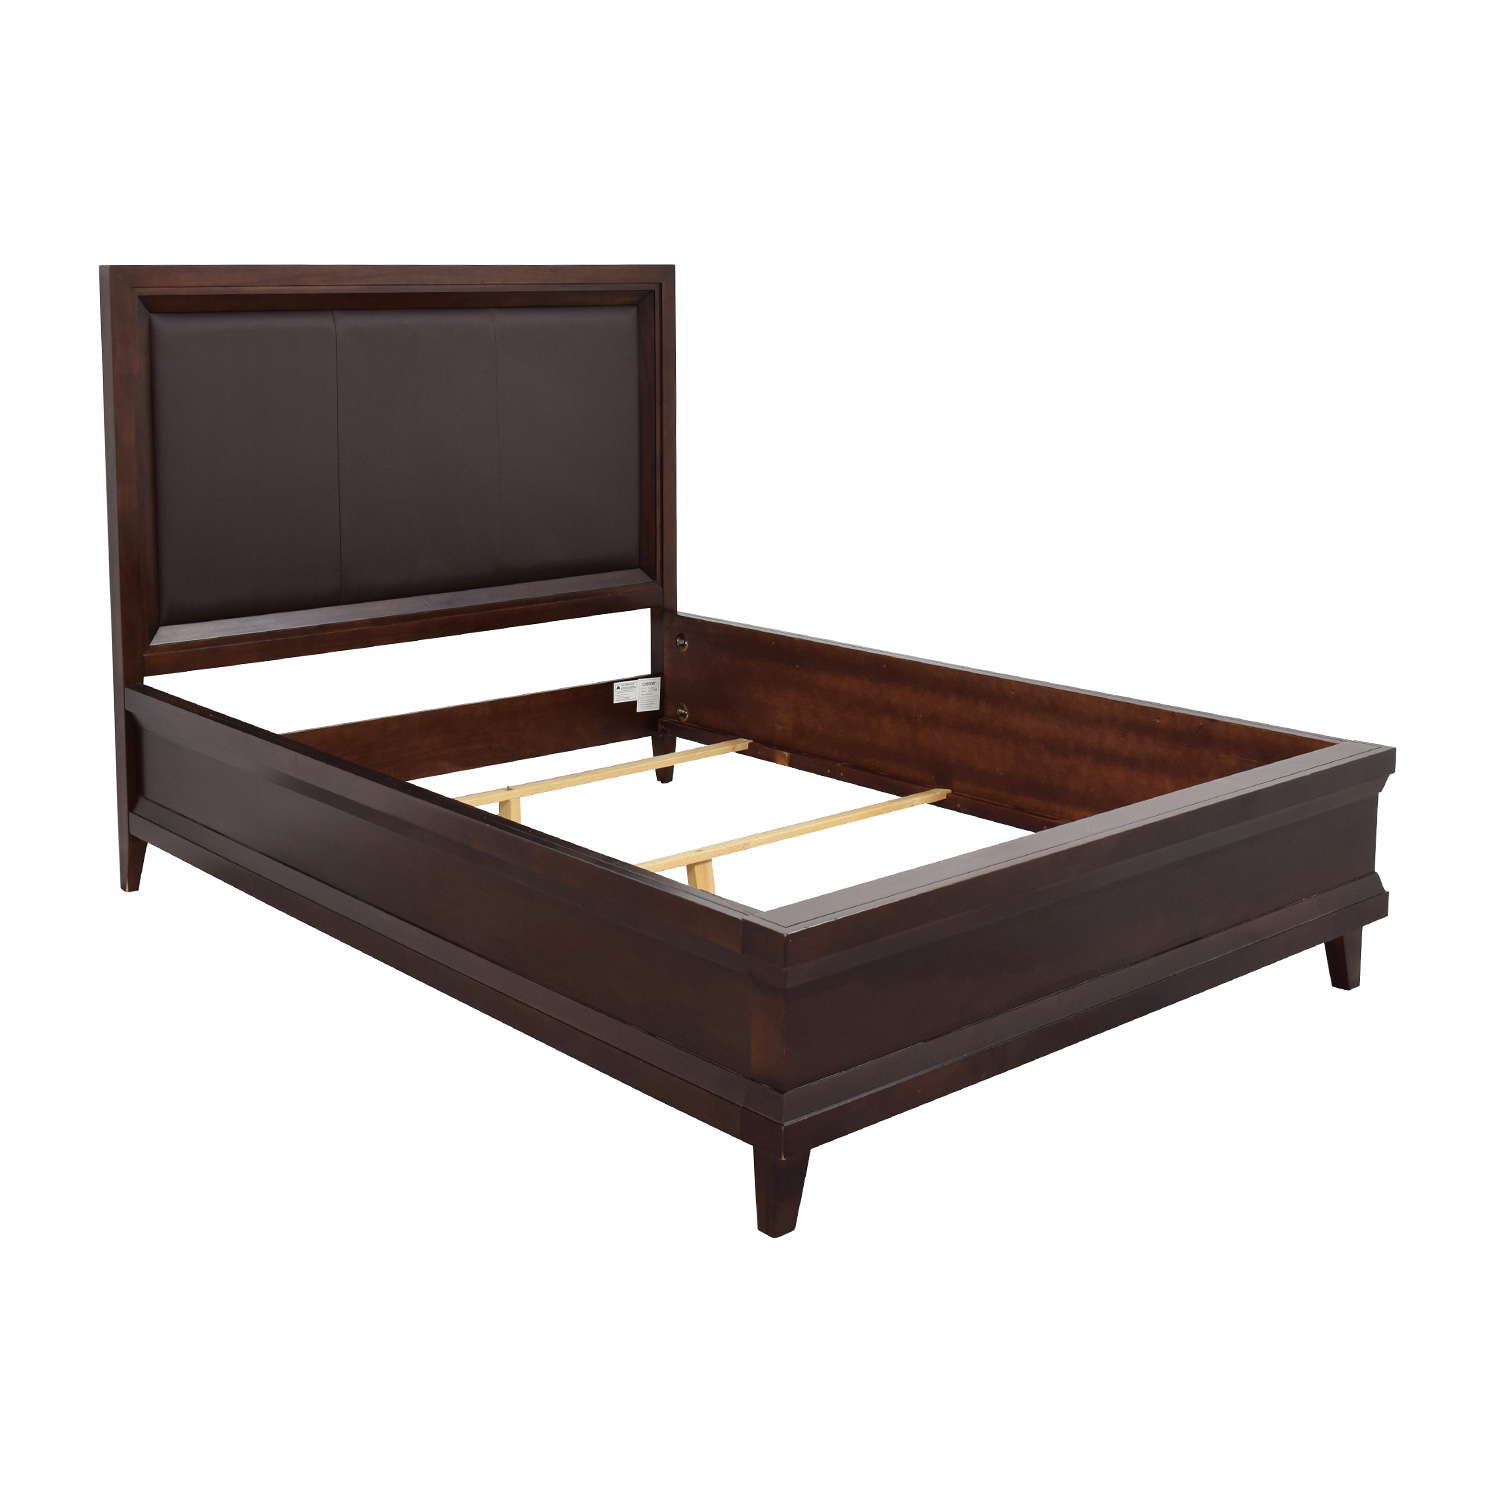 82 off raymour and flanigan raymour and flanigan dark 16930 | raymour and flanigan dark brown queen bed frame second hand